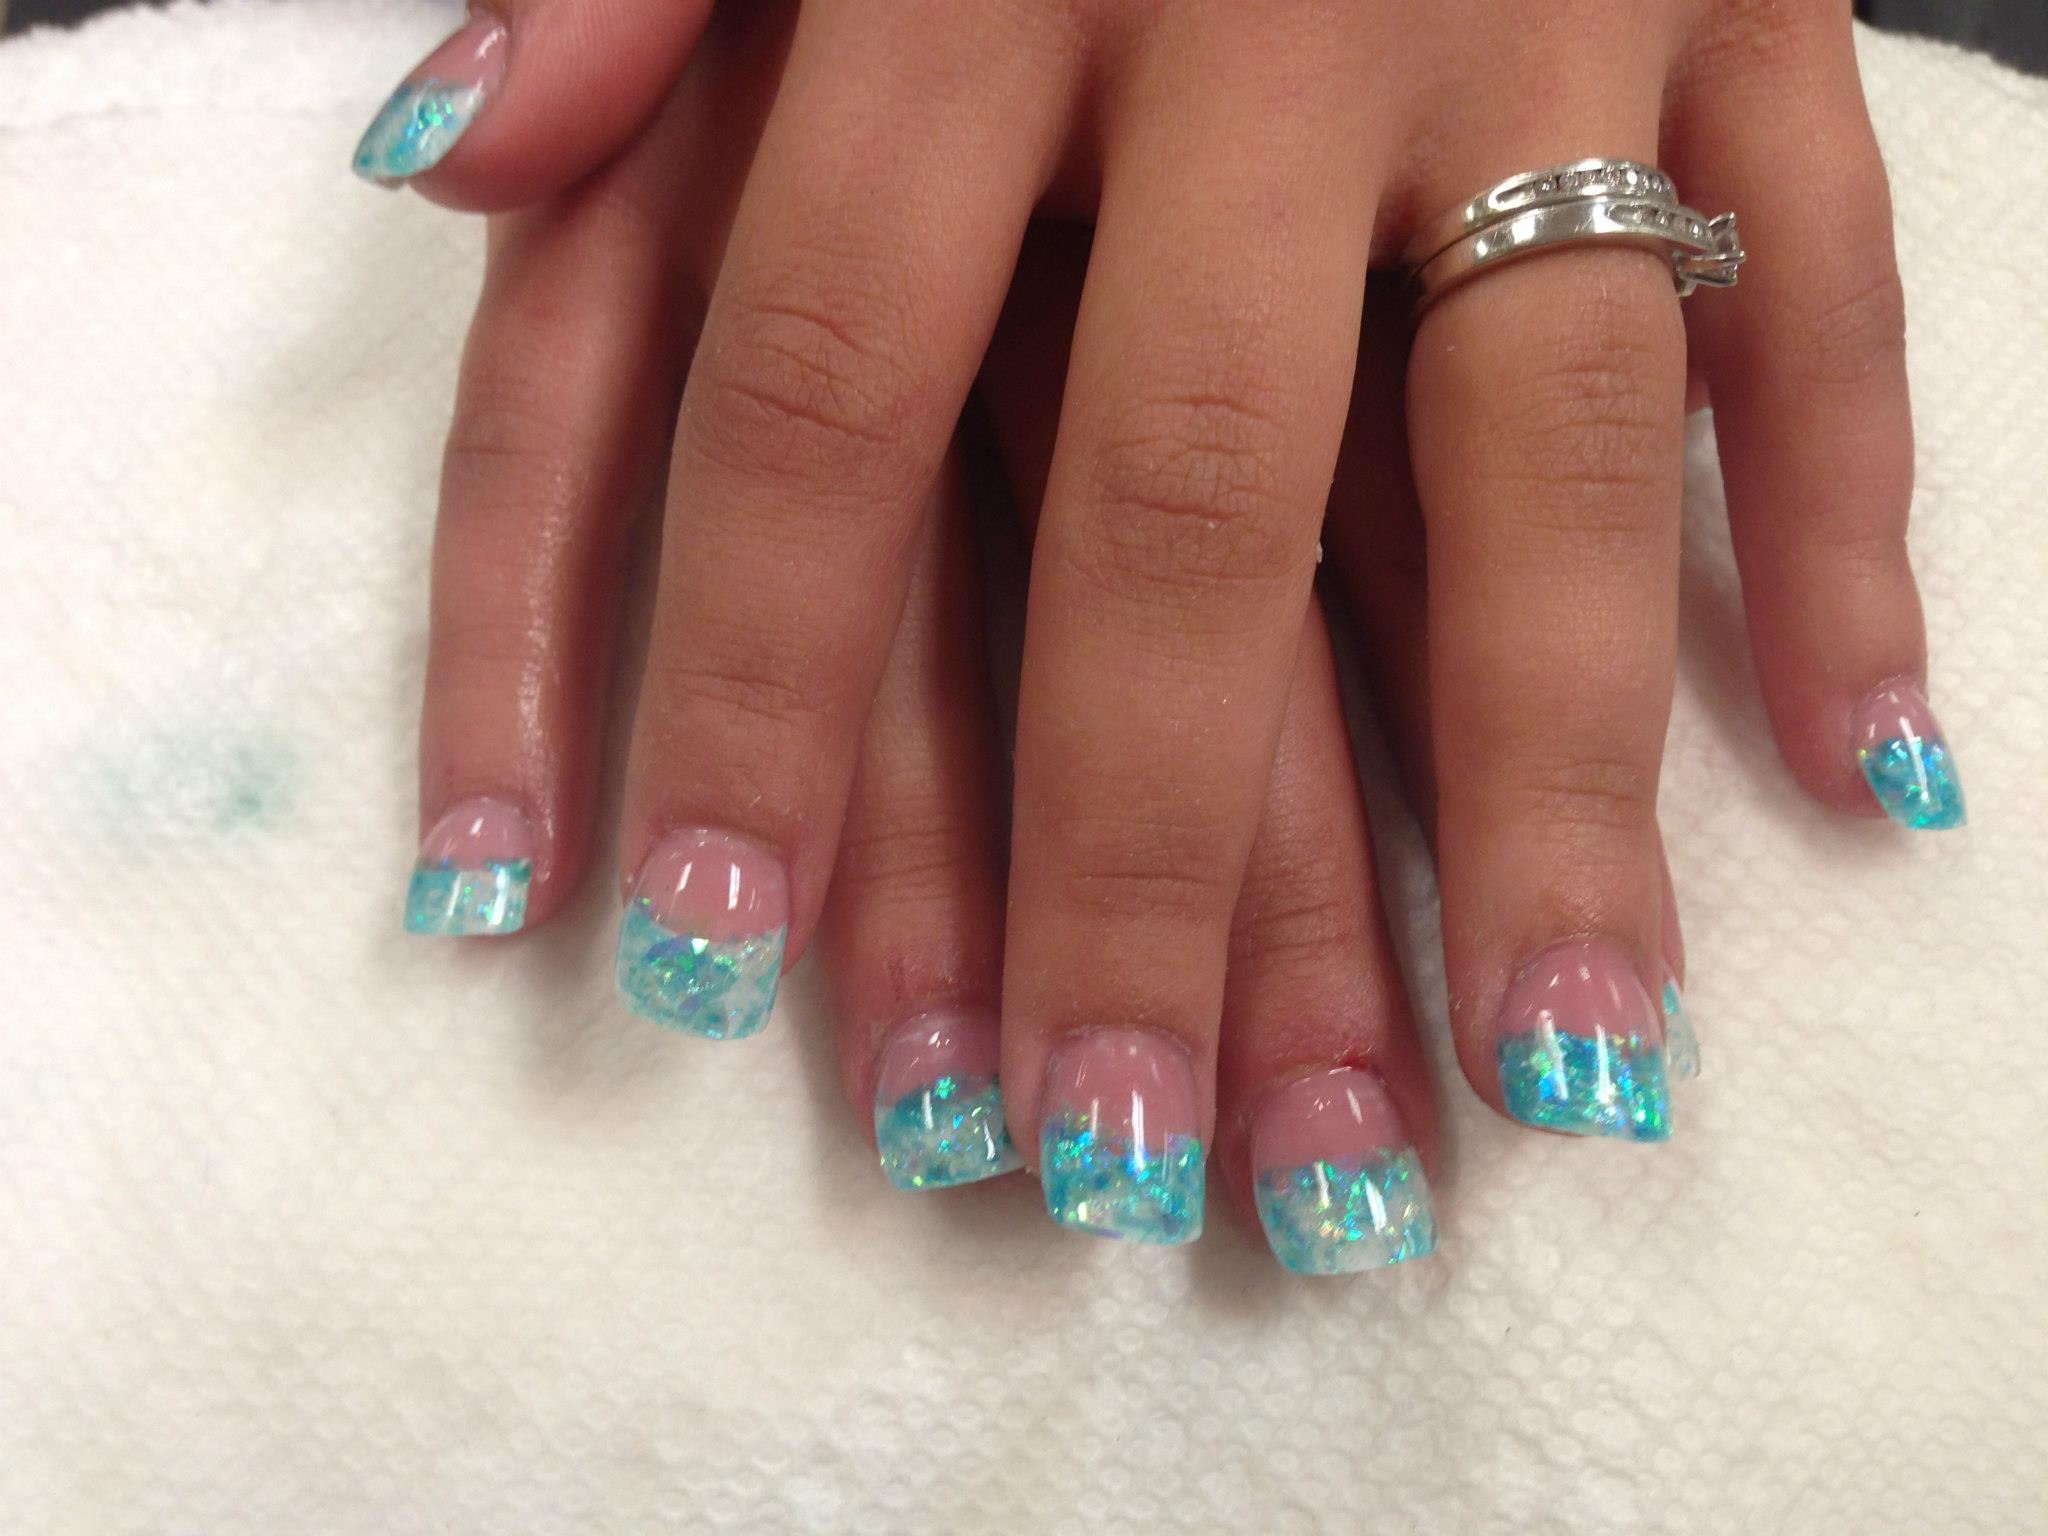 Ocean Reflections Nail Art Designs By Top Nails Clarksville Tn